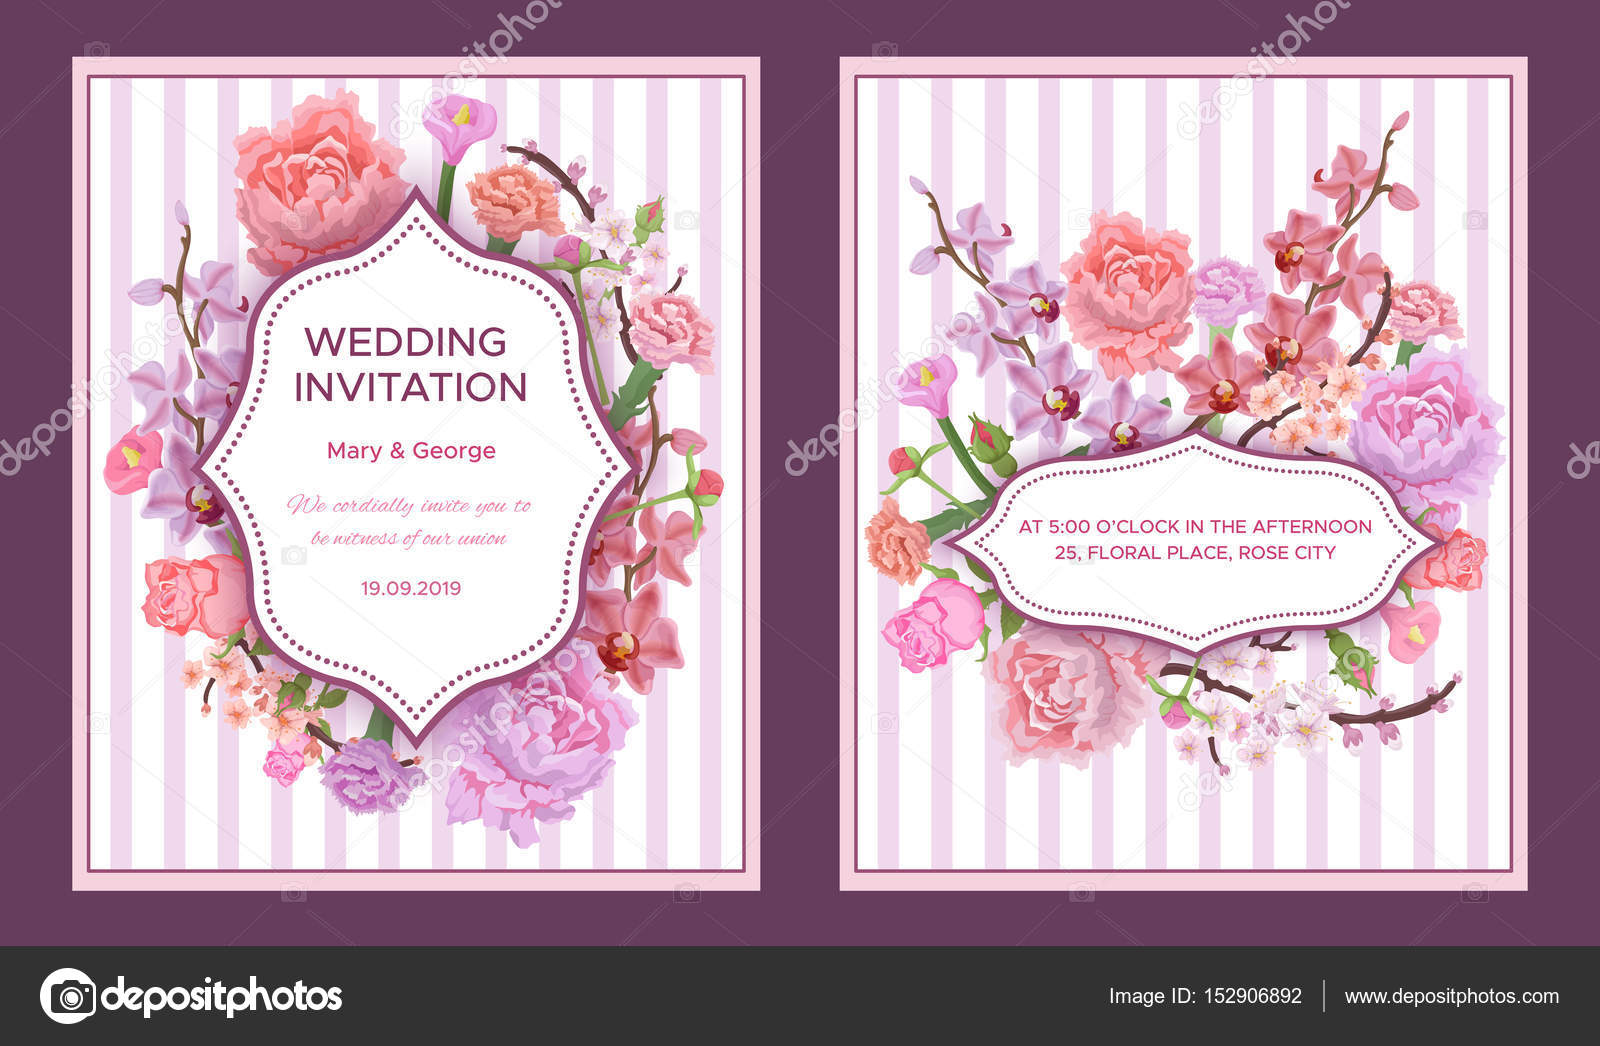 Colorful Wedding Invitation Cards — Stock Vector © Mogil #152906892